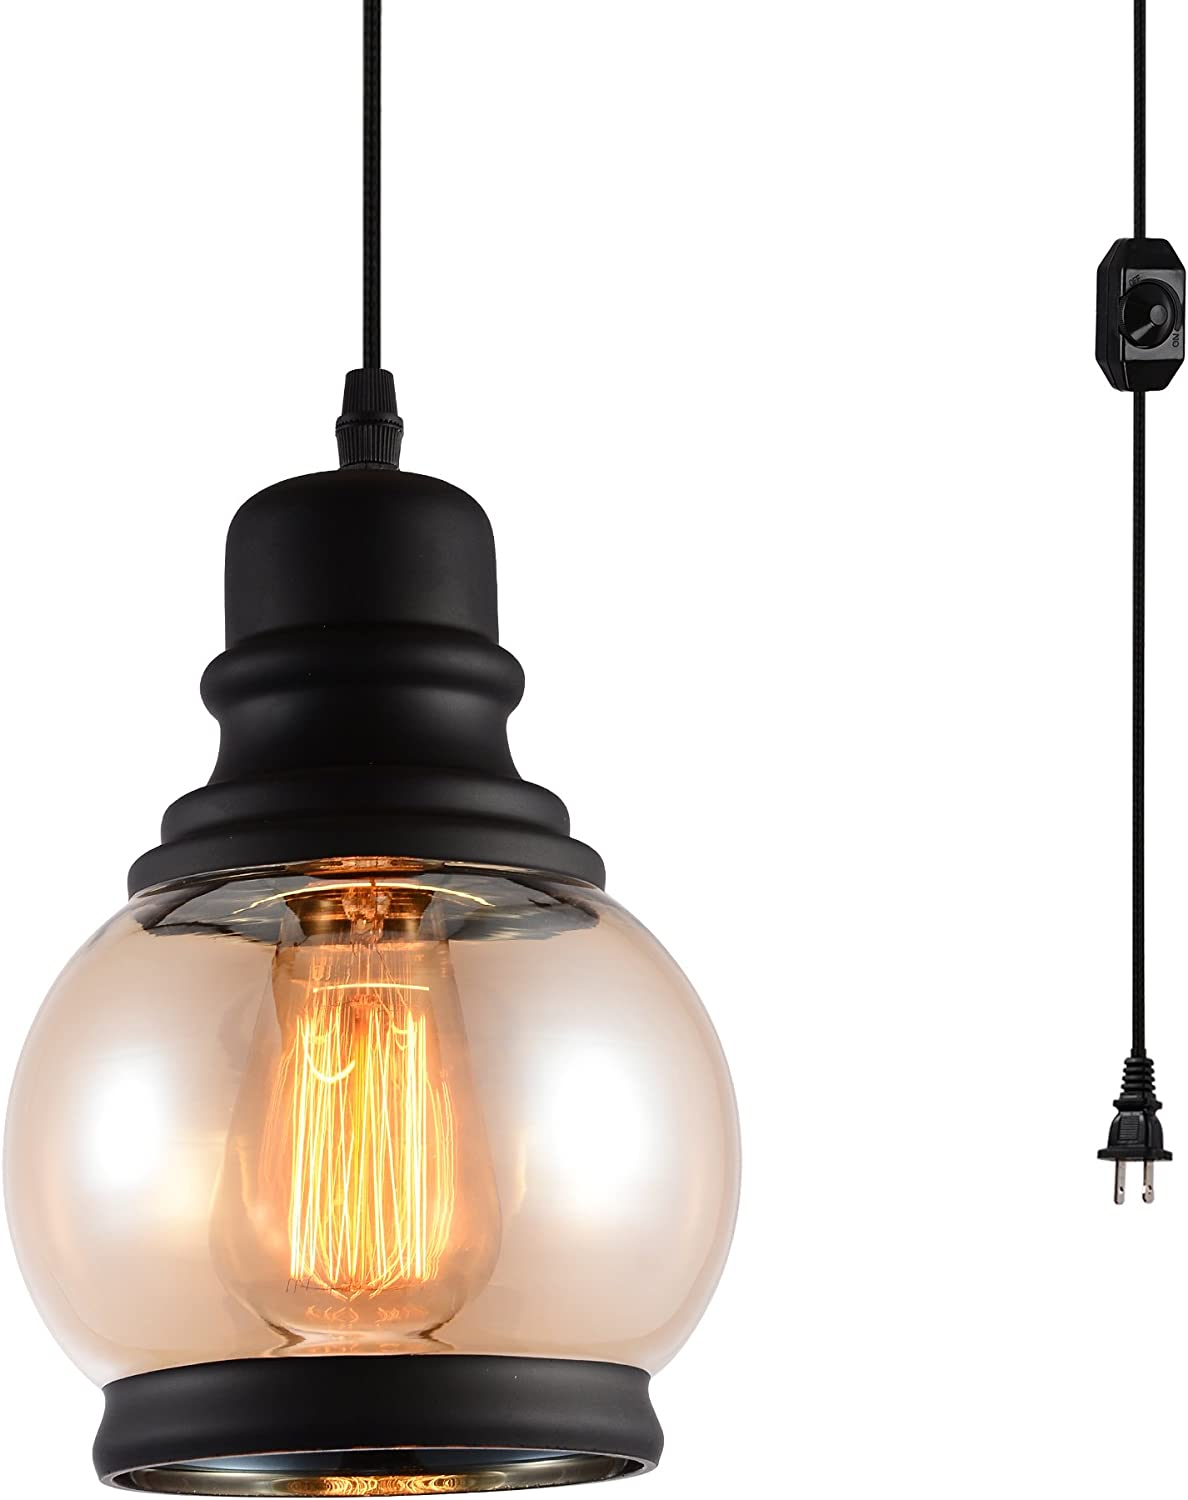 HMVPL Plug in Pendant Lighting Fixtures with Dimmer Switch and Long Hanging Cord, Vintage Glass Swag Chandelier Ceiling Lamp for Kitchen Island Dining Table Bedroom Foyer Entry Hallway